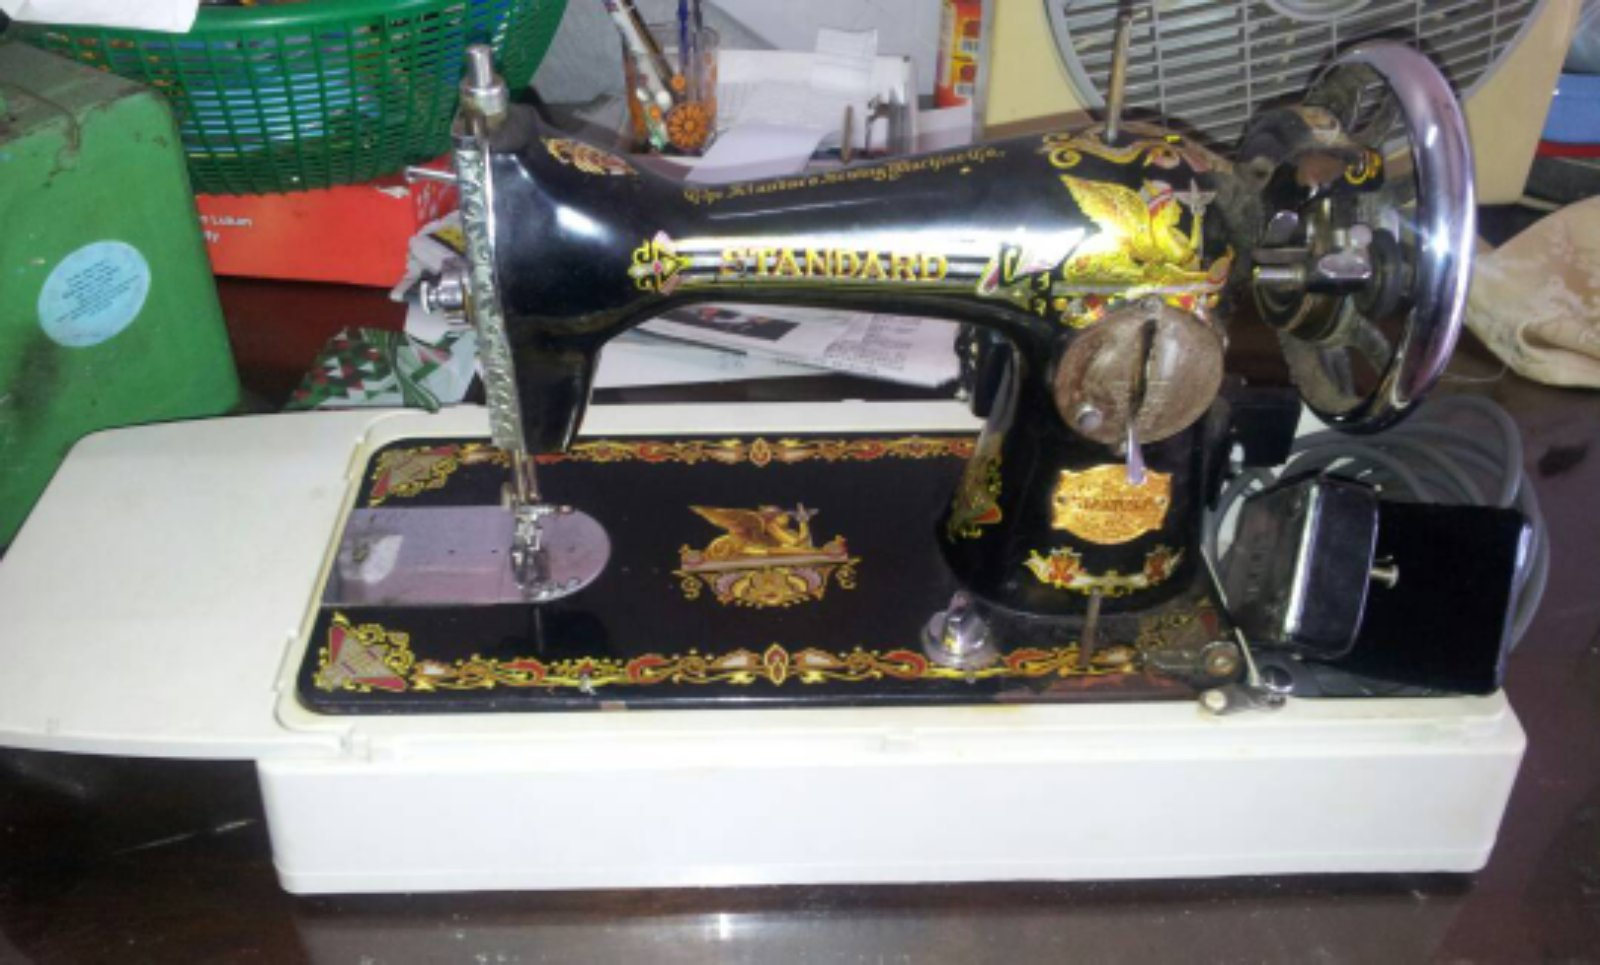 Second Hand Portable Anti Sewing Machine!